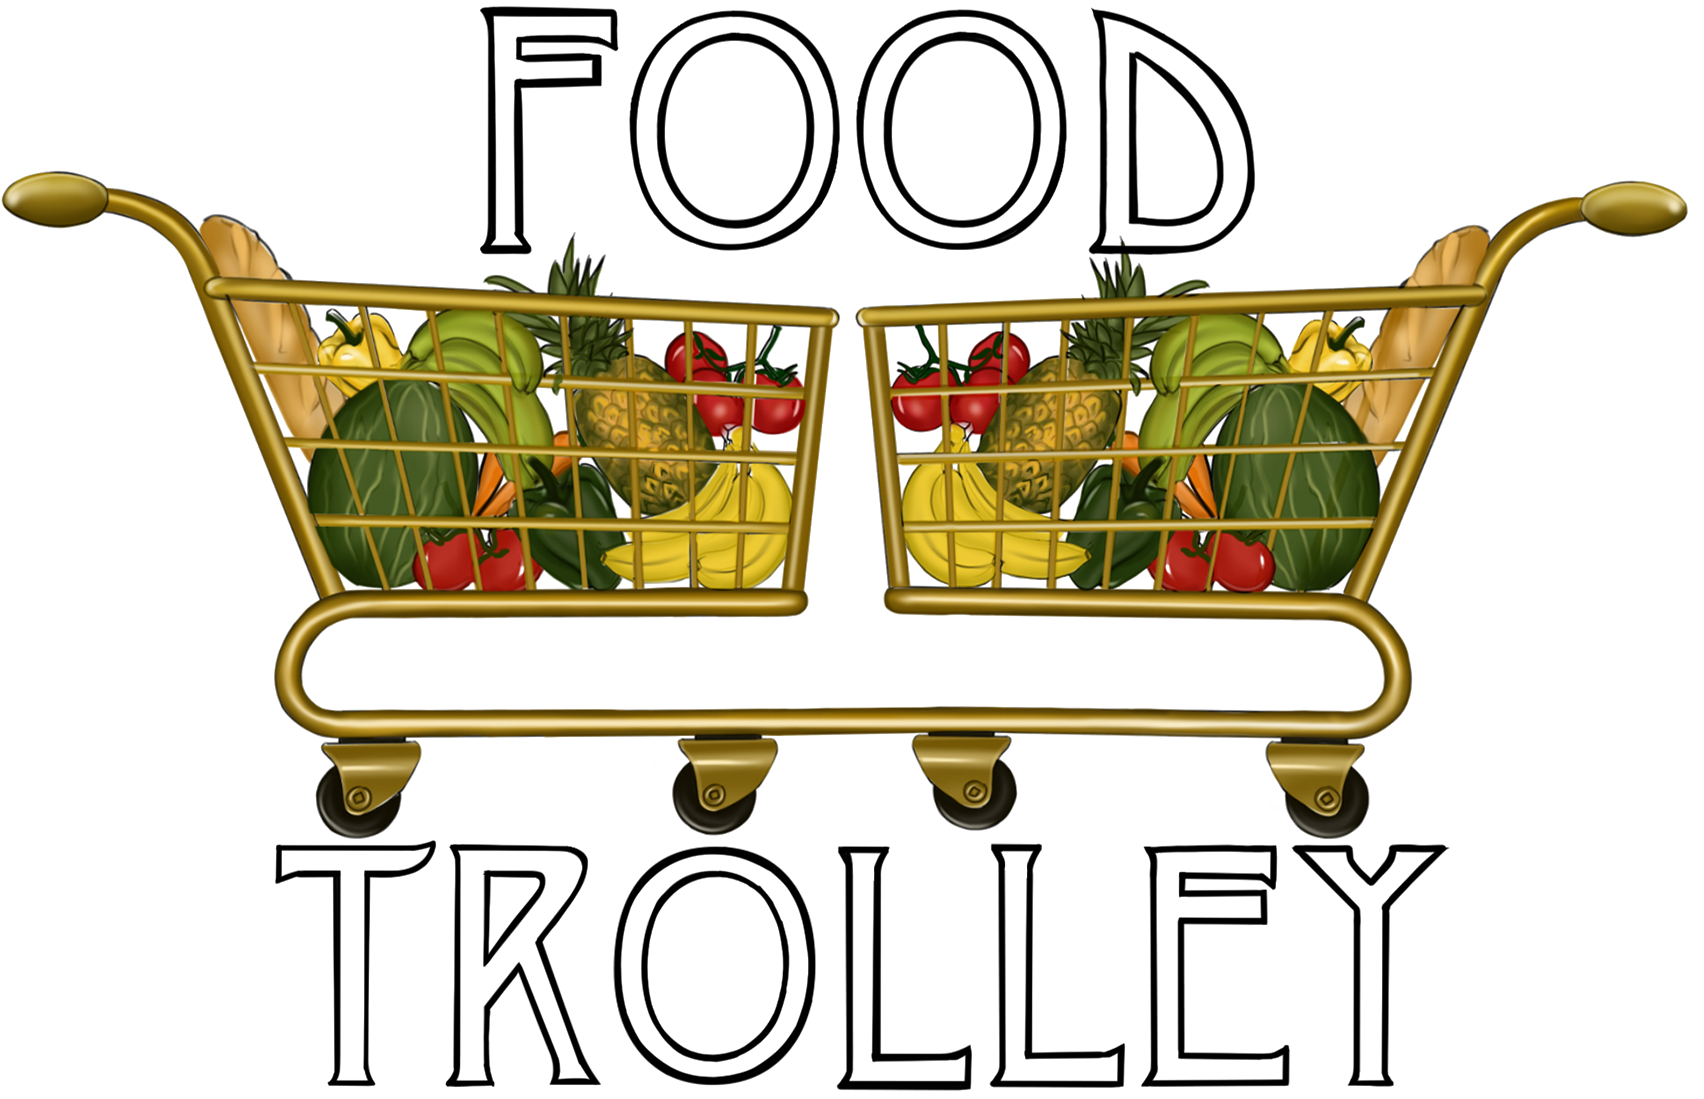 Vegetable clipart trolley. Food lagos fresh chilled